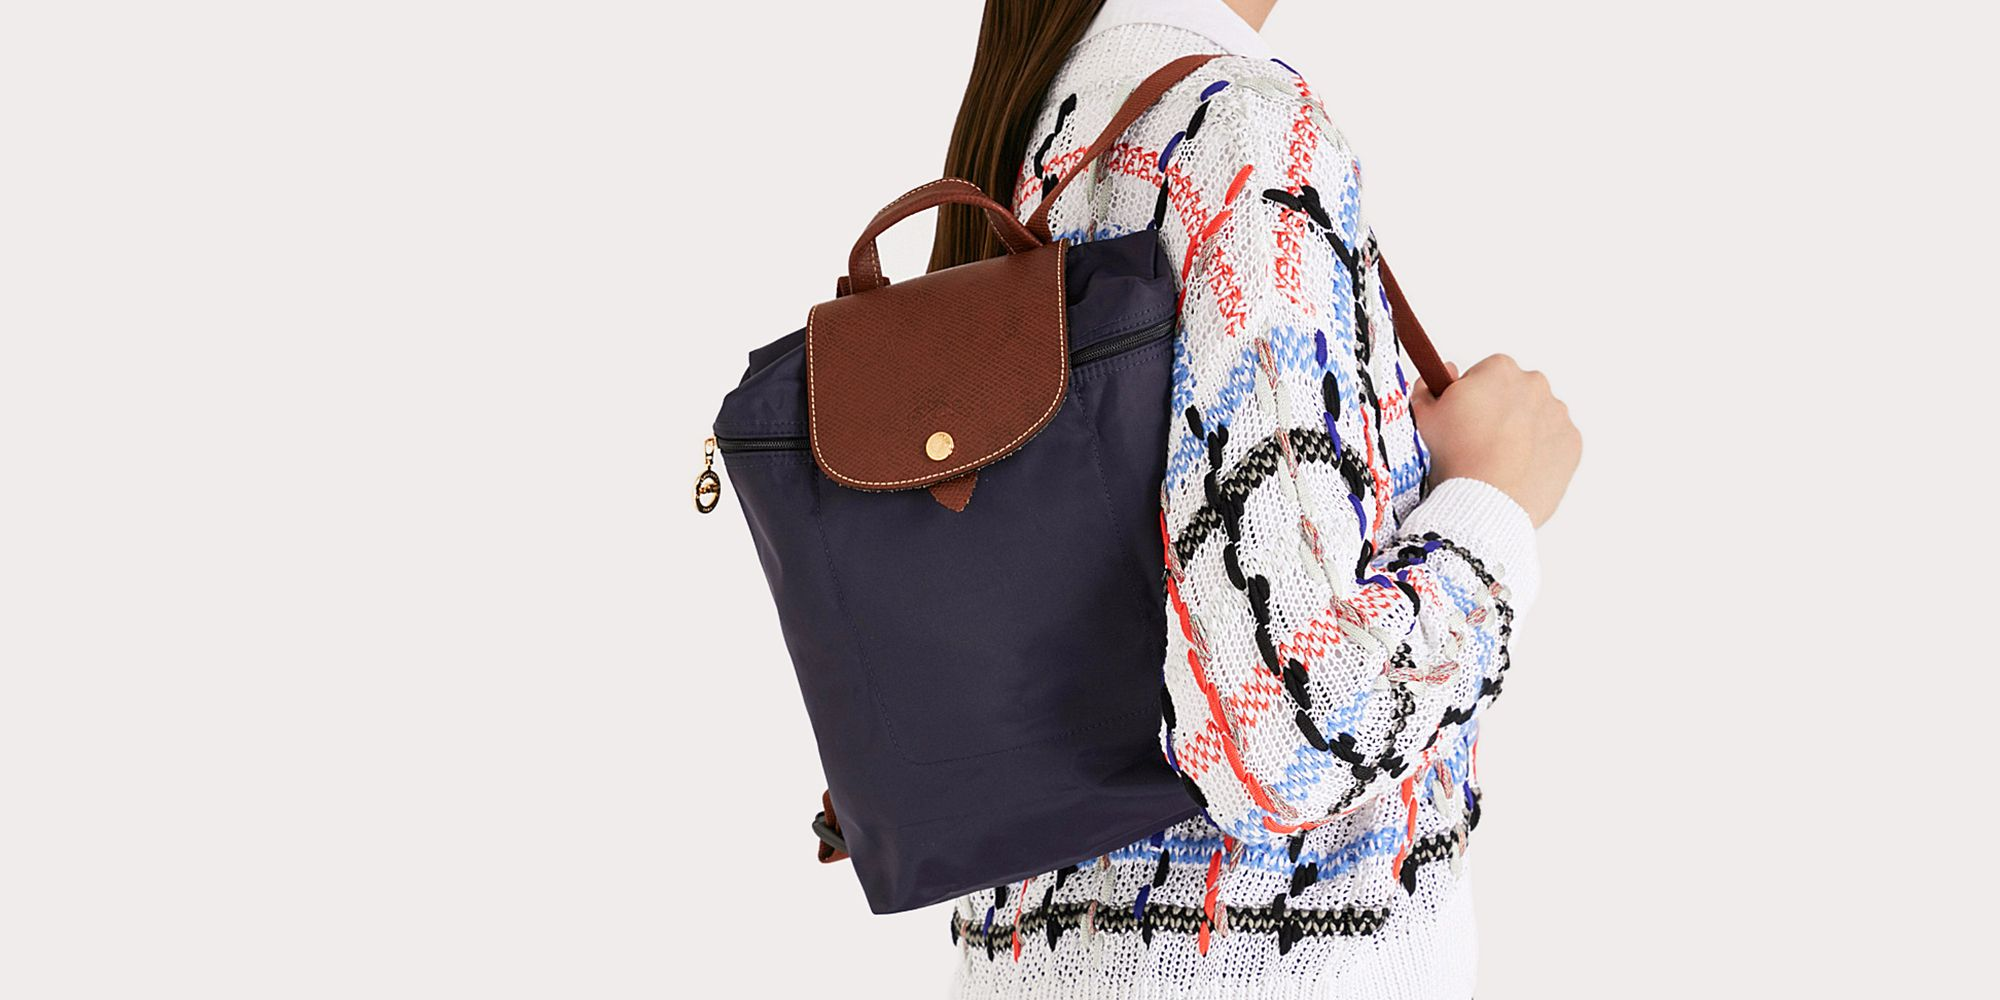 Longchamp 'Le Pliage' Backpack Review - Best Backpack